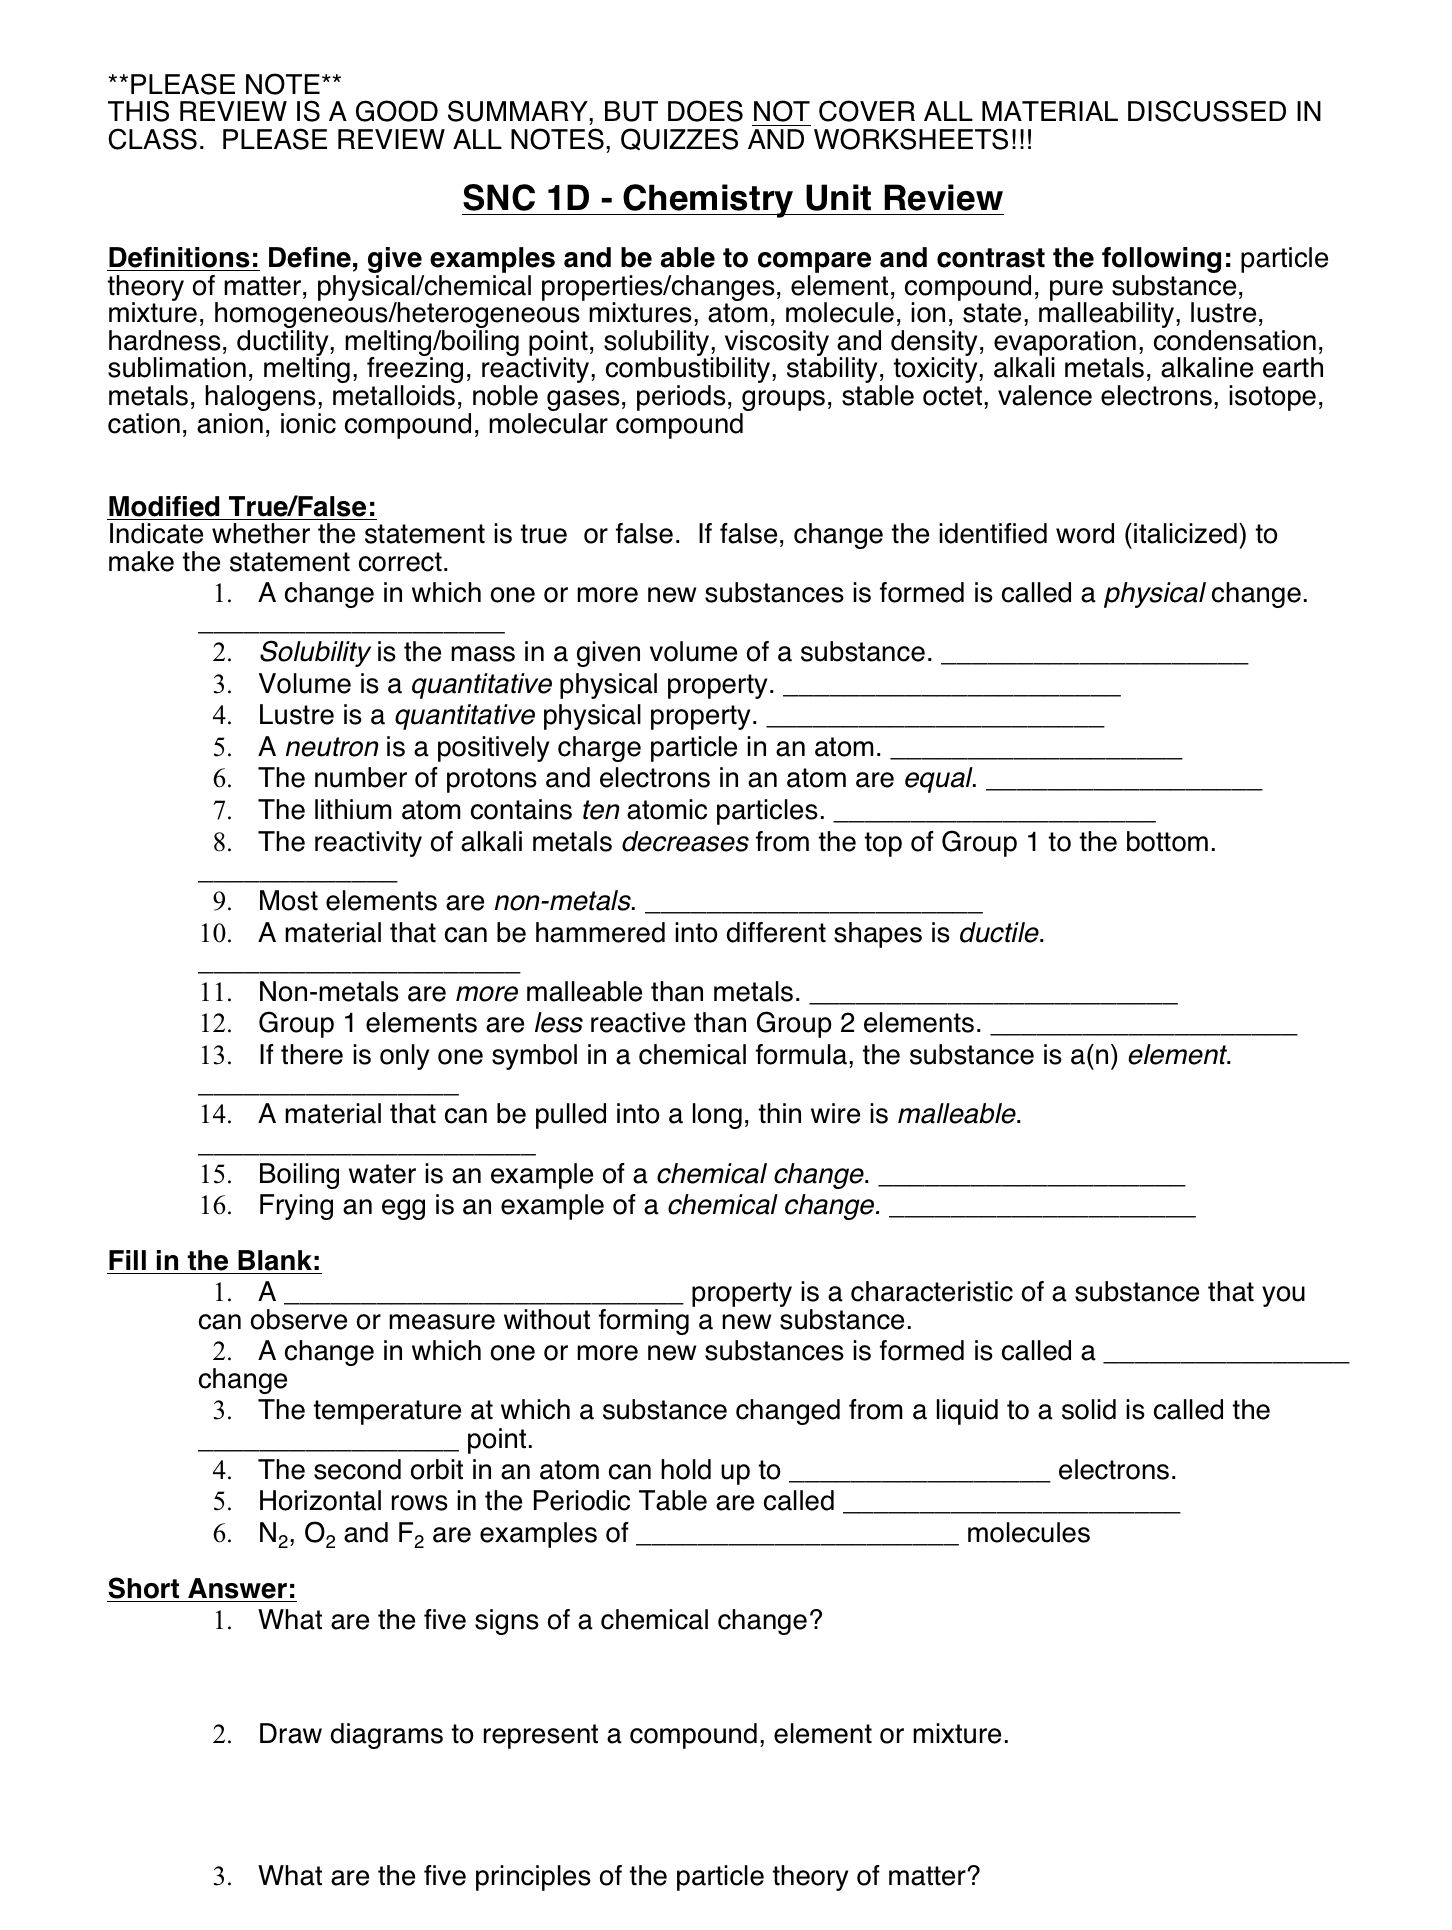 Chemistry Unit Review Worksheet